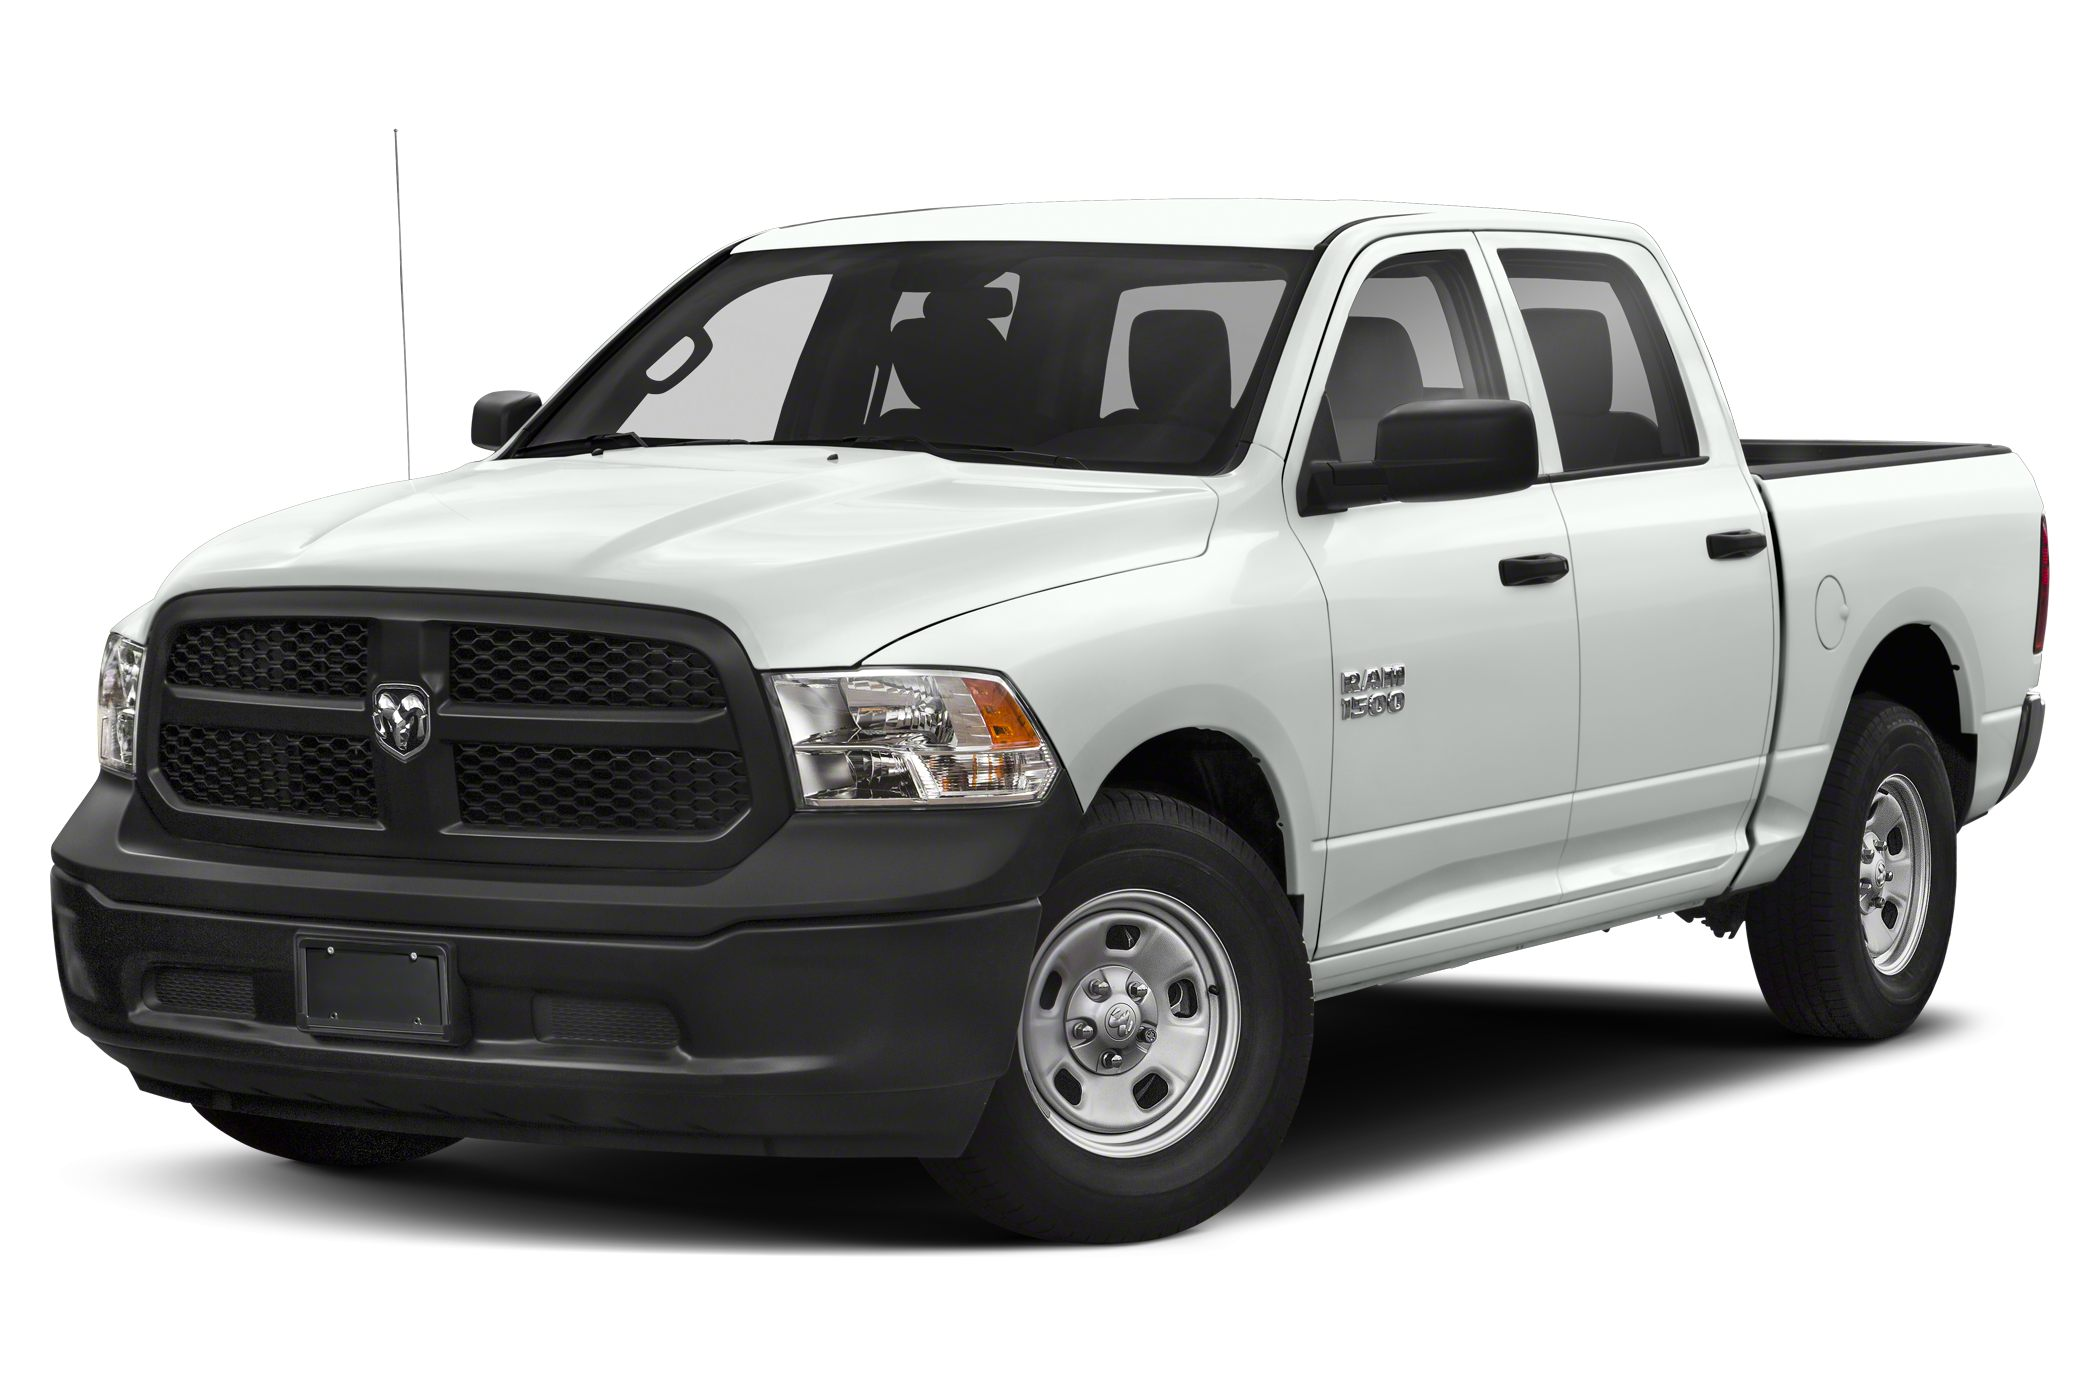 2014 Ram 1500 Tradesman Express >> 2014 Ram 1500 Tradesman Express 4x4 Crew Cab 140 In Wb Pictures